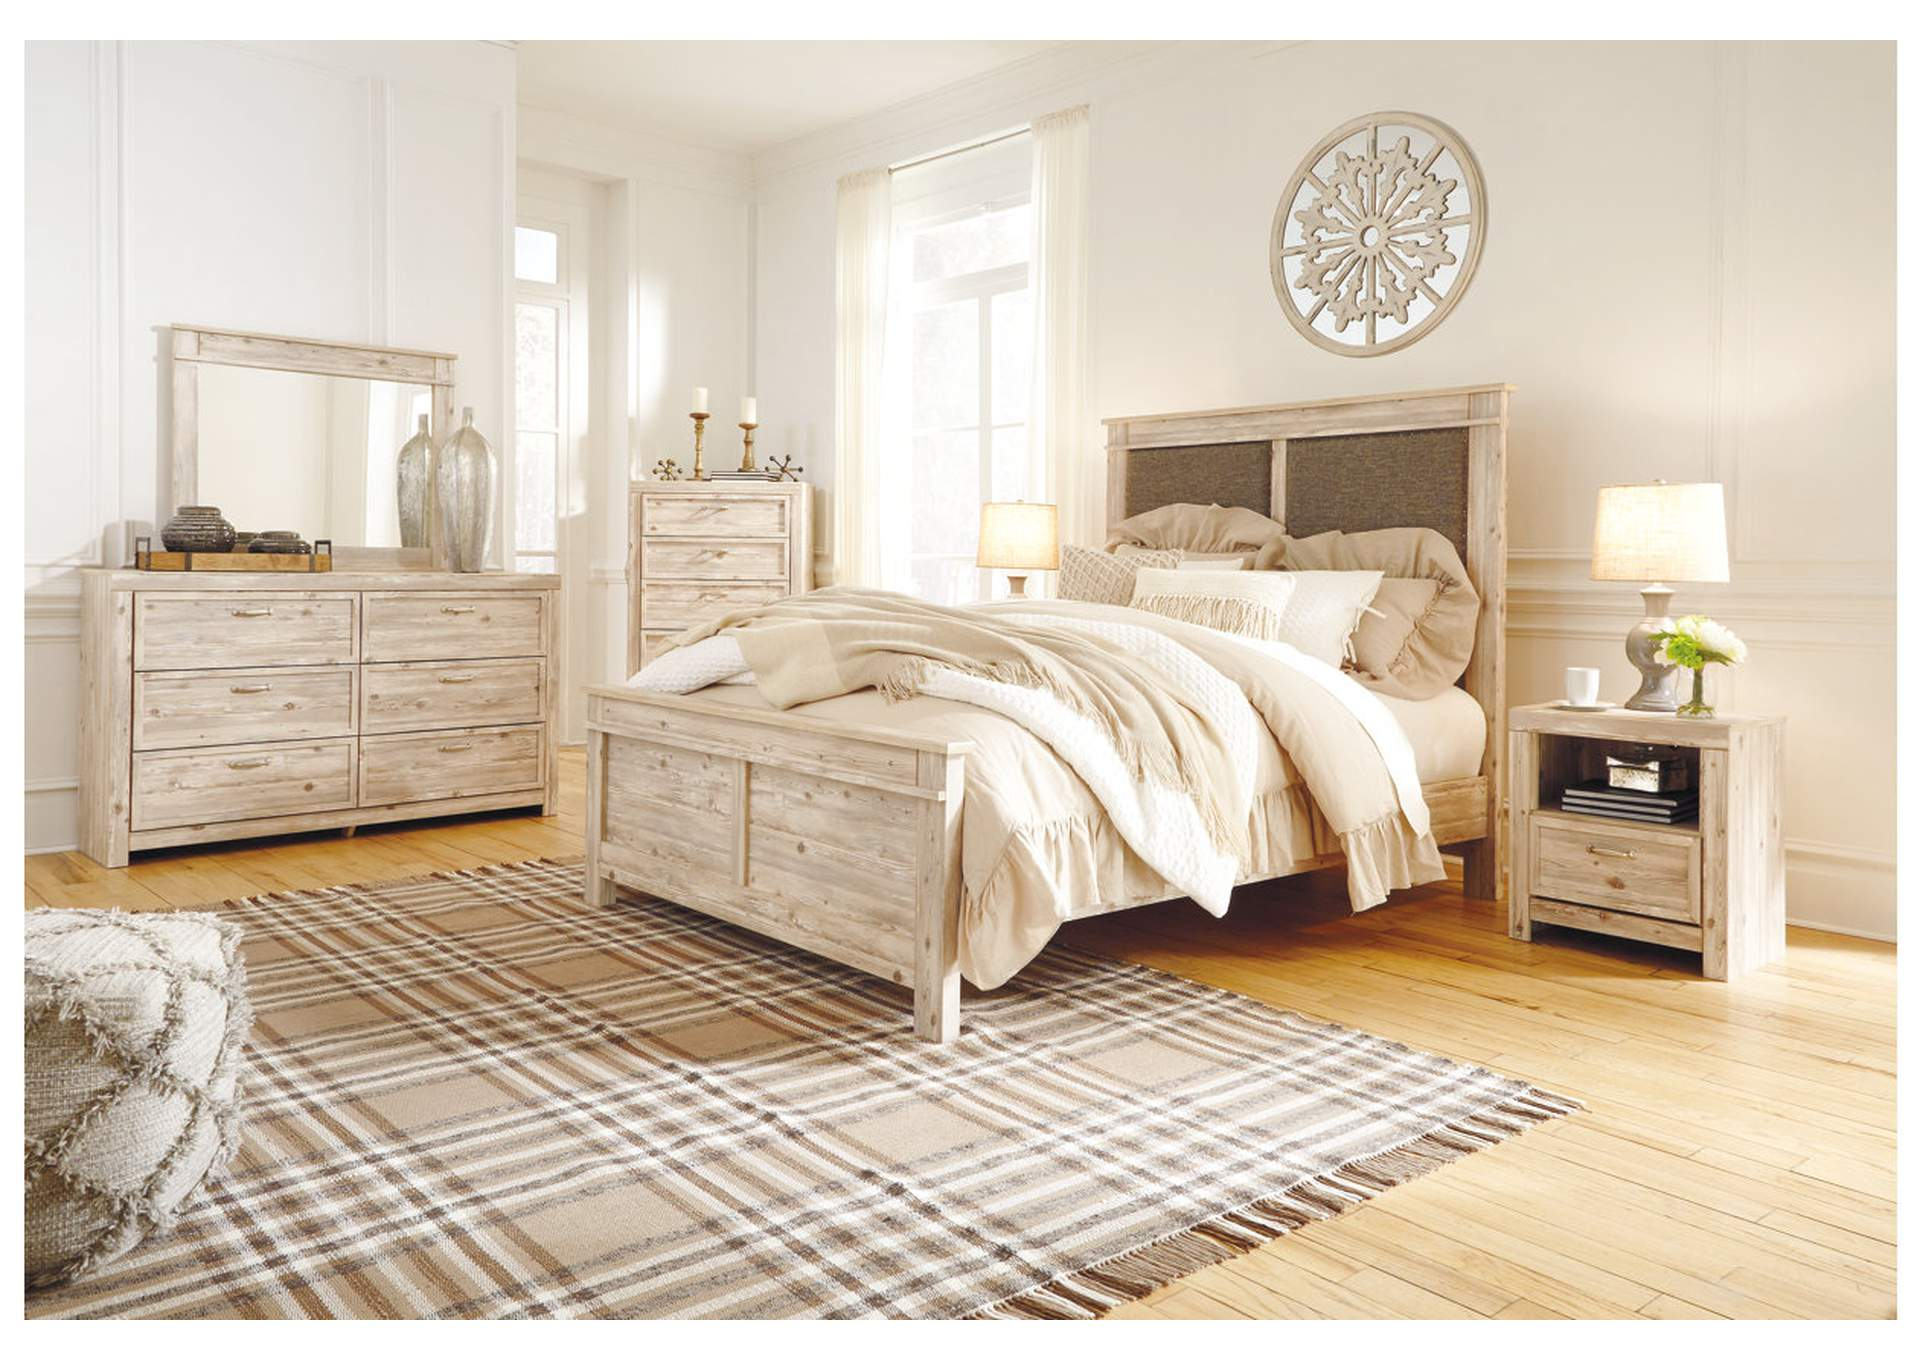 Willabry Weathered Beige Upholstered Queen Panel Bed w/Dresser & Mirror,Signature Design By Ashley